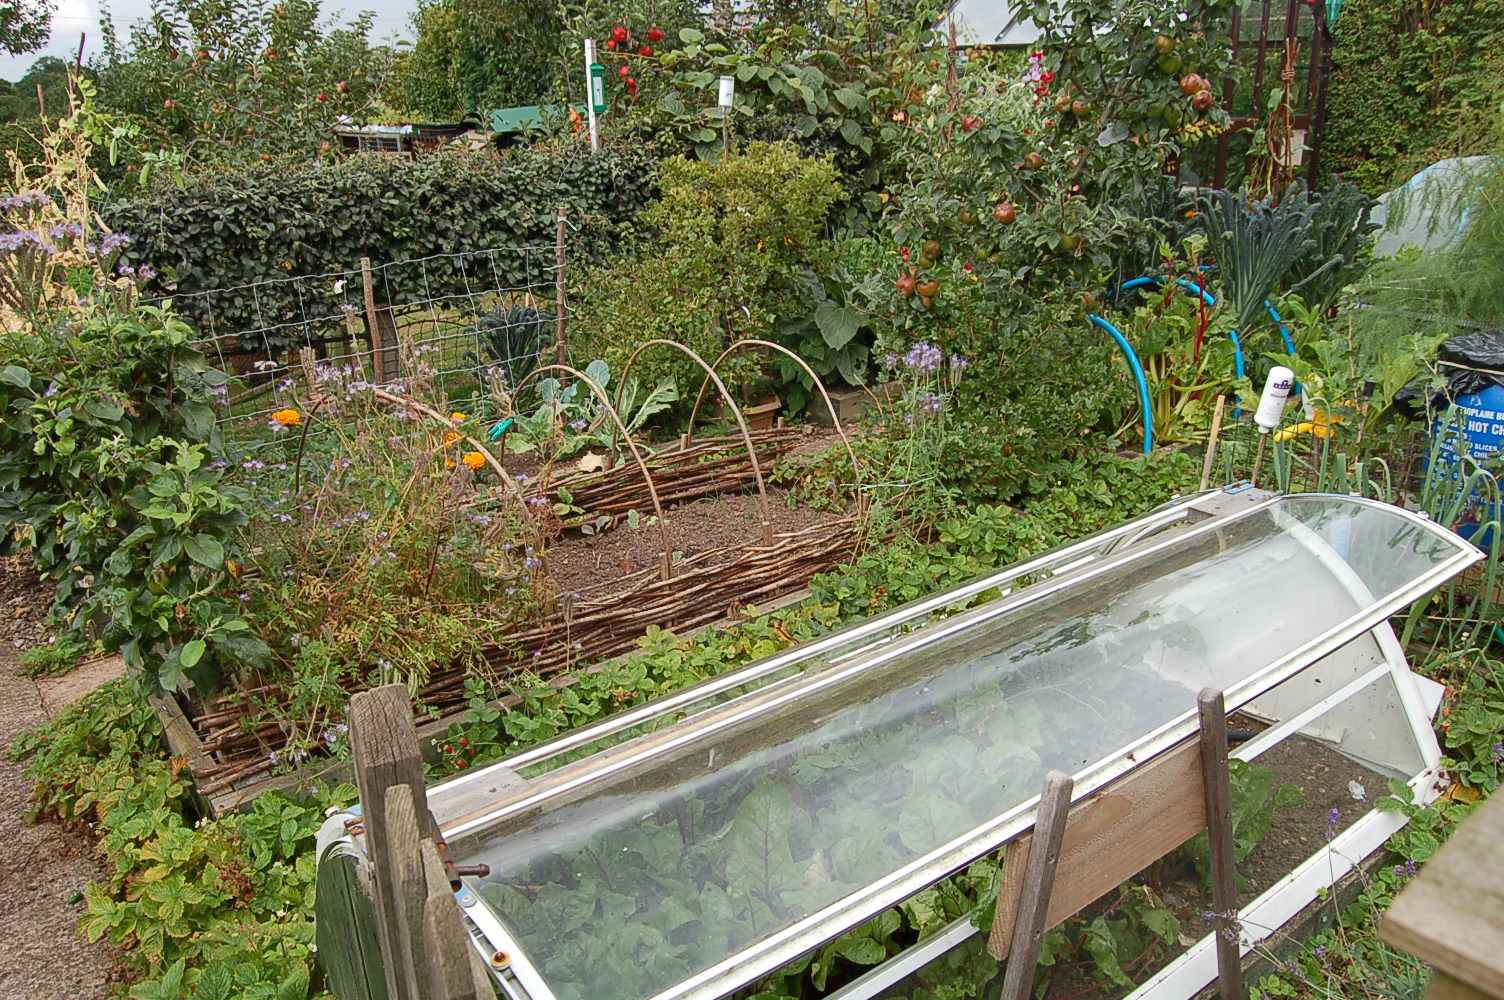 Permaculture Garden | greenbenchramblings on Backyard Permaculture Design id=14509